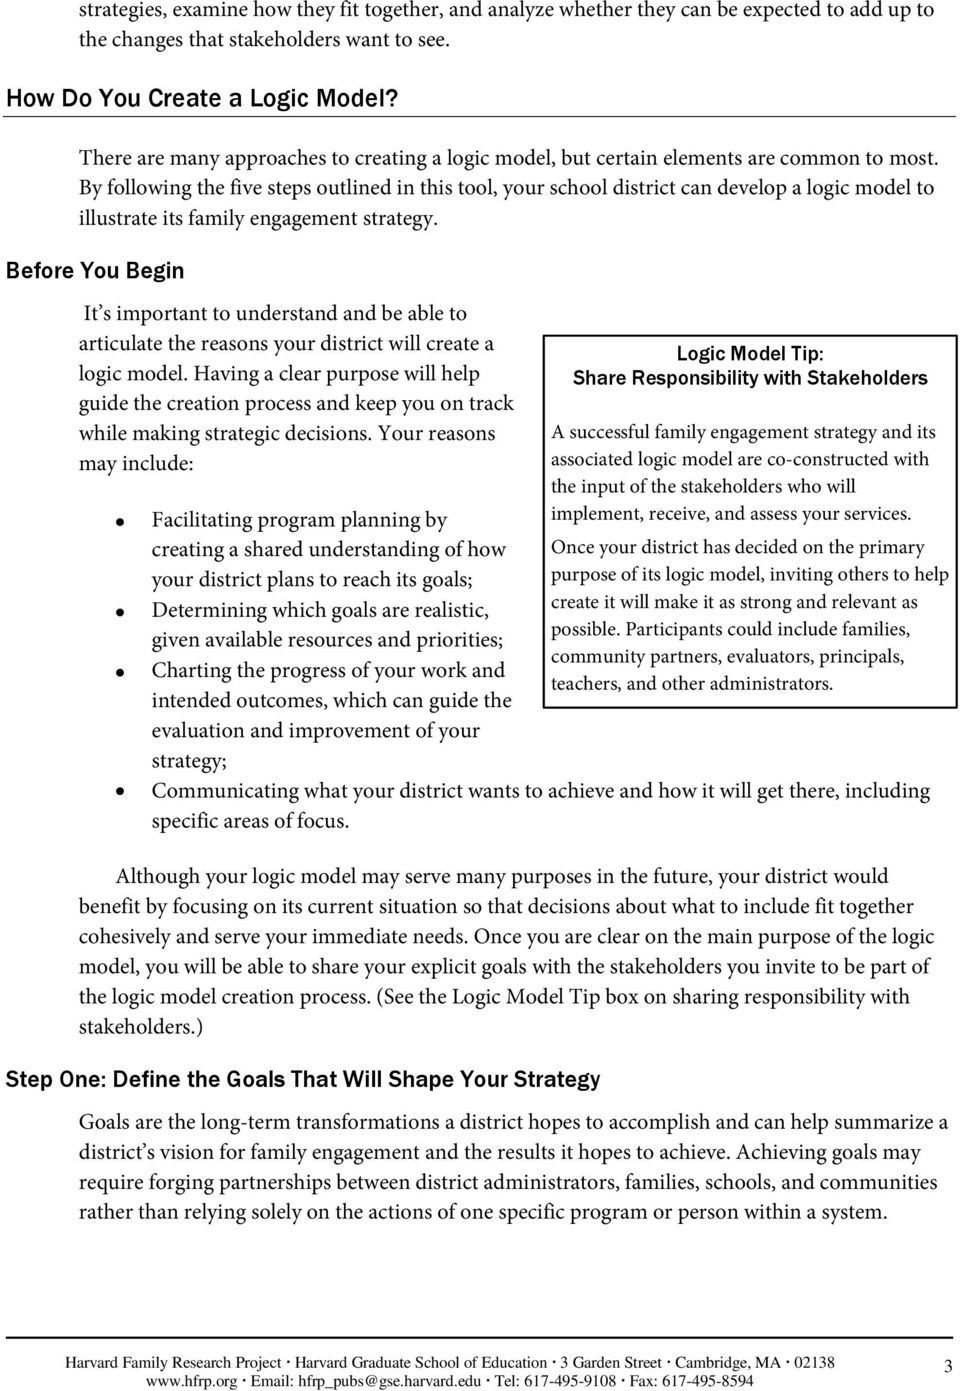 By following the five steps outlined in this tool, your school district can develop a logic model to illustrate its family engagement strategy.